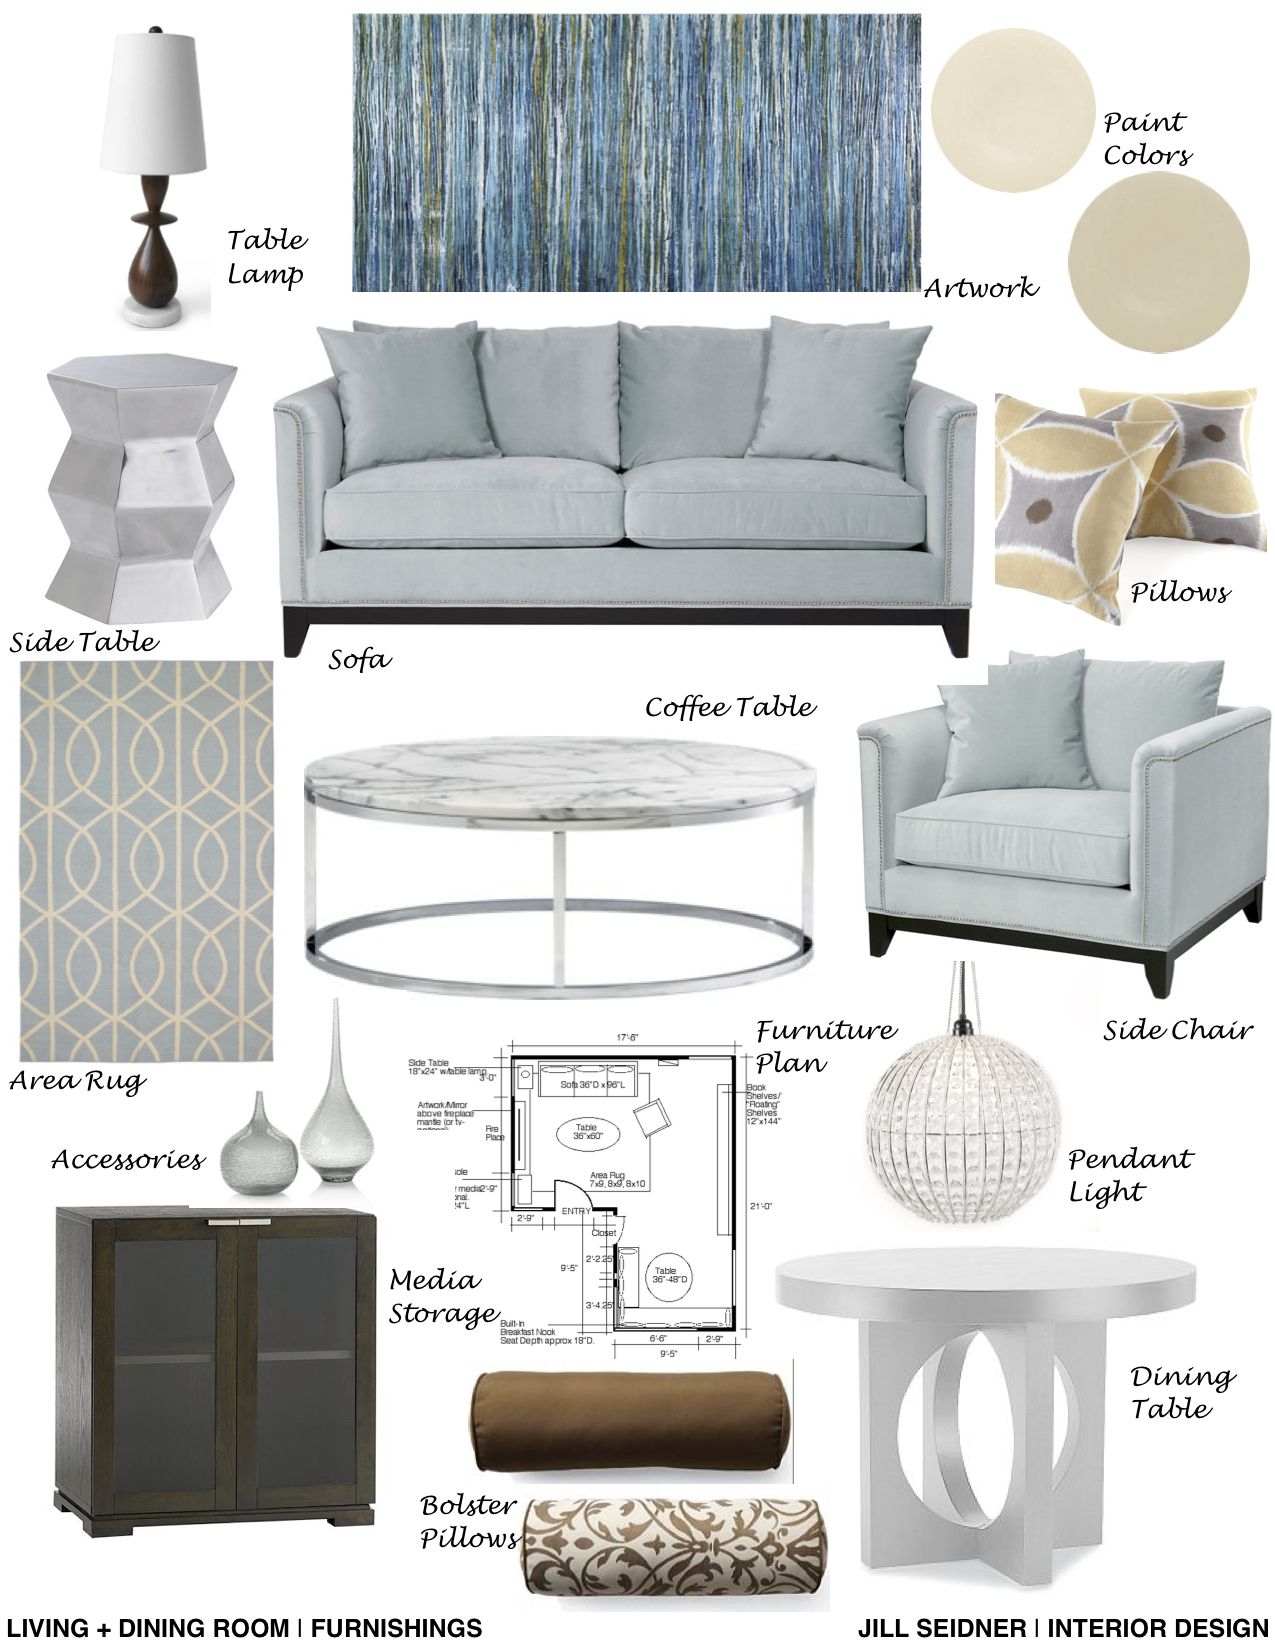 Living Room Furnishings Traditional Settees Furniture Concept Board Jill Seidner Interior